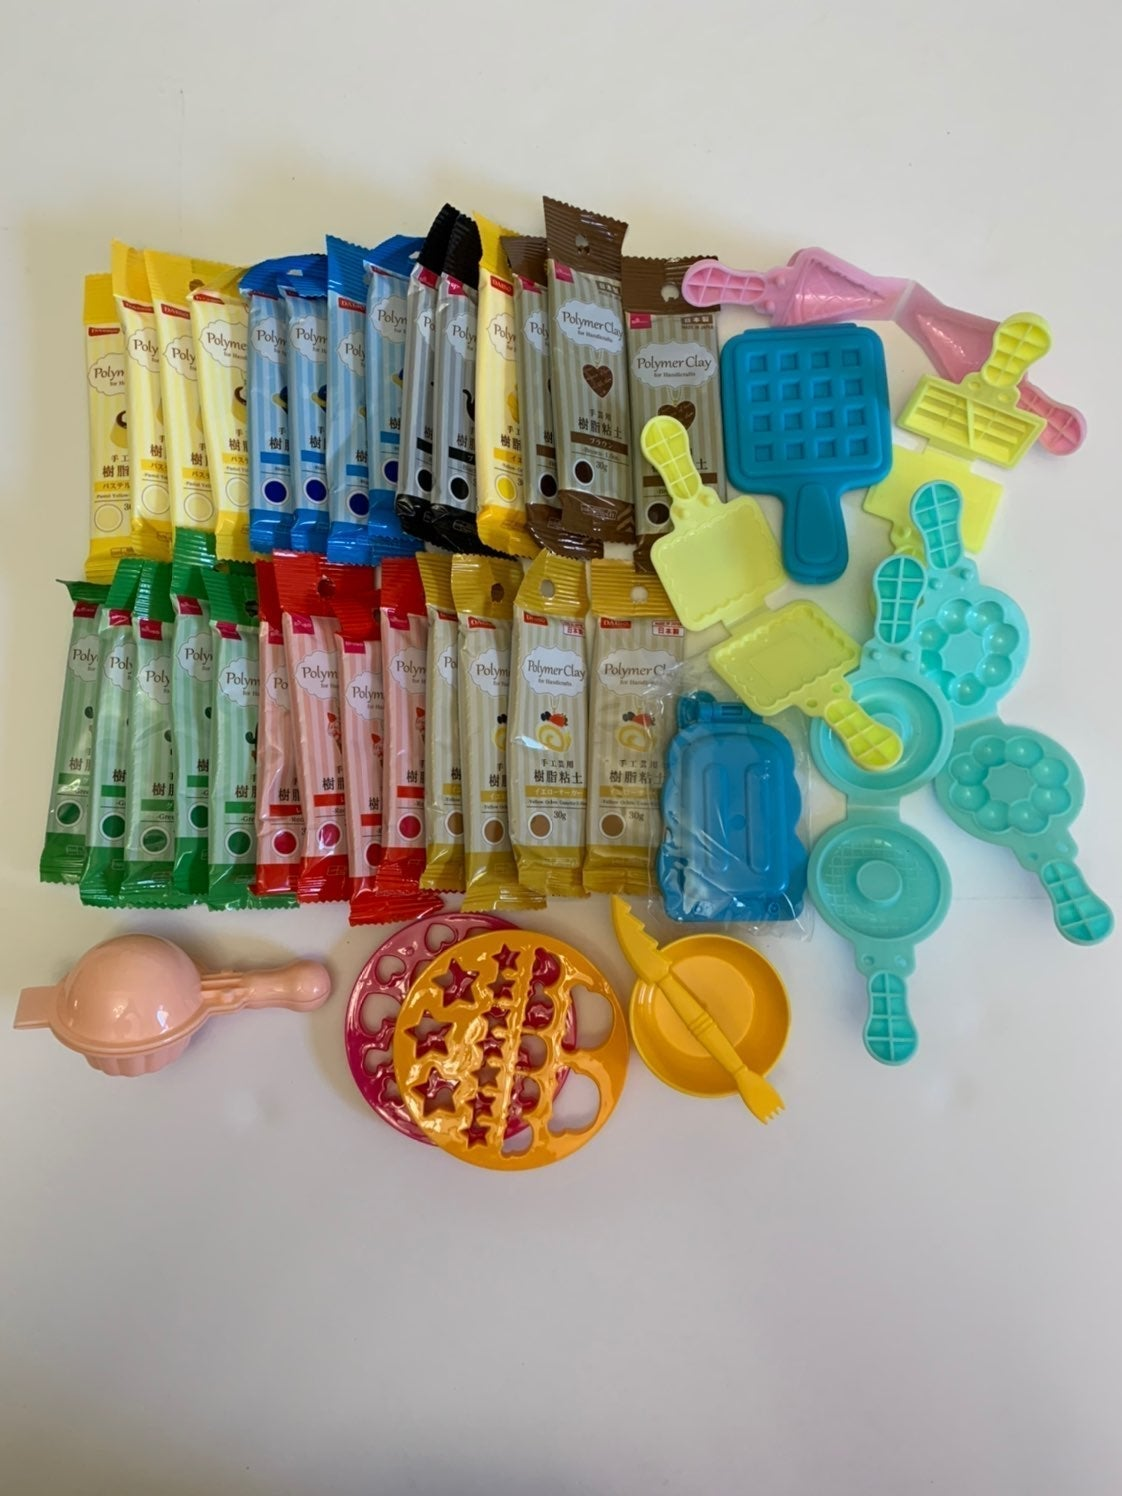 27 Packs of Daiso Polymer With Molds